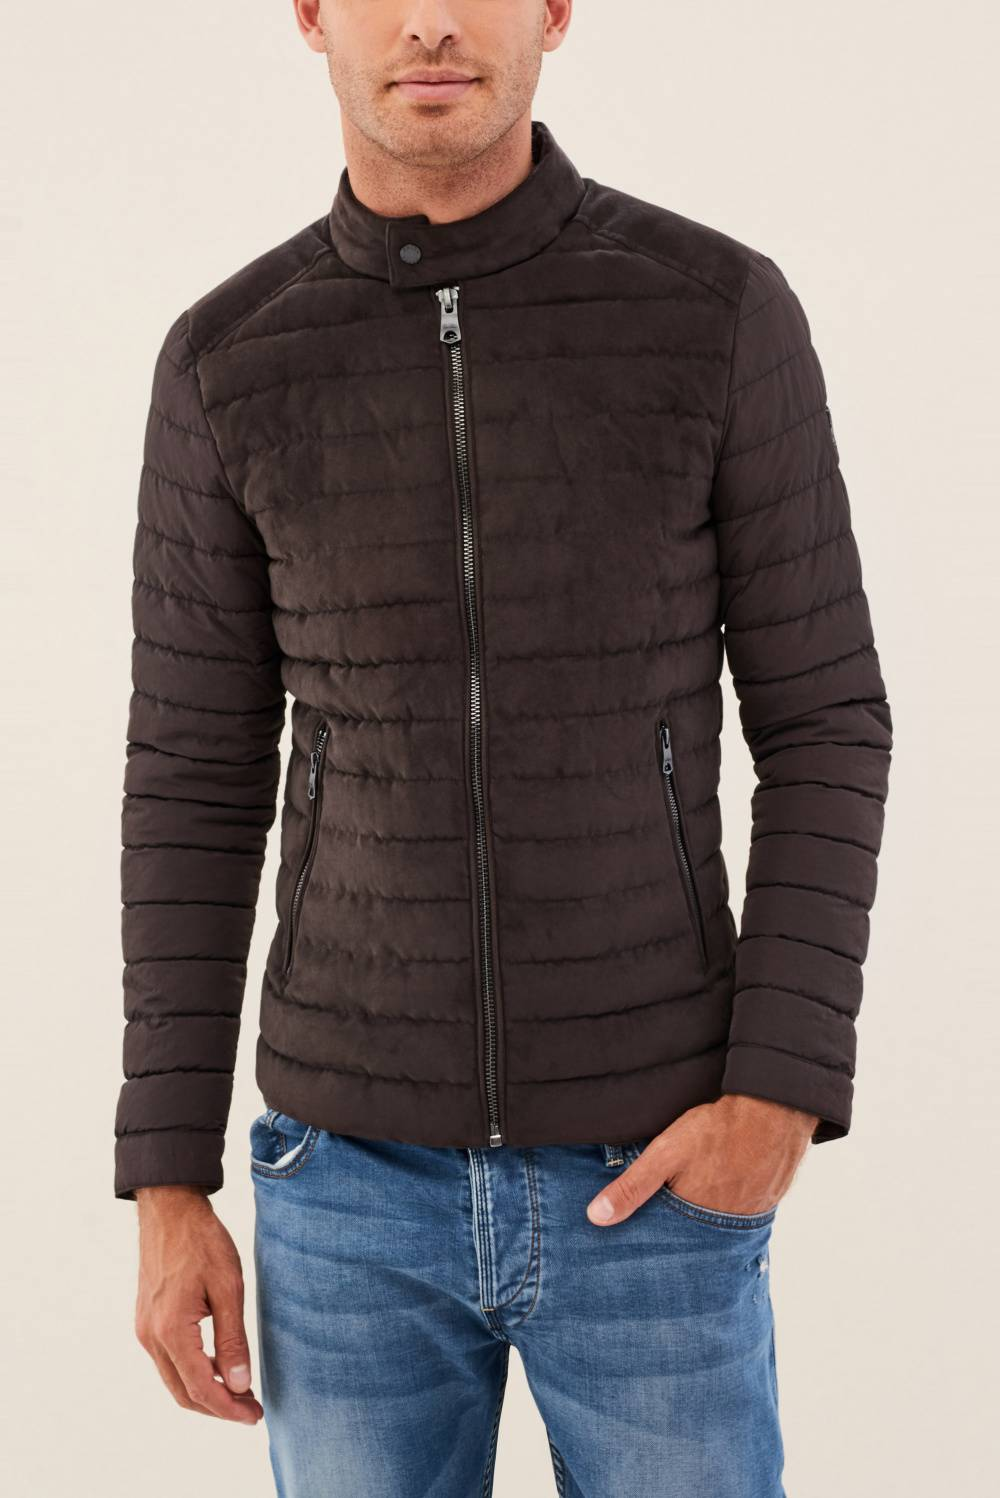 Padded jacket - Salsa